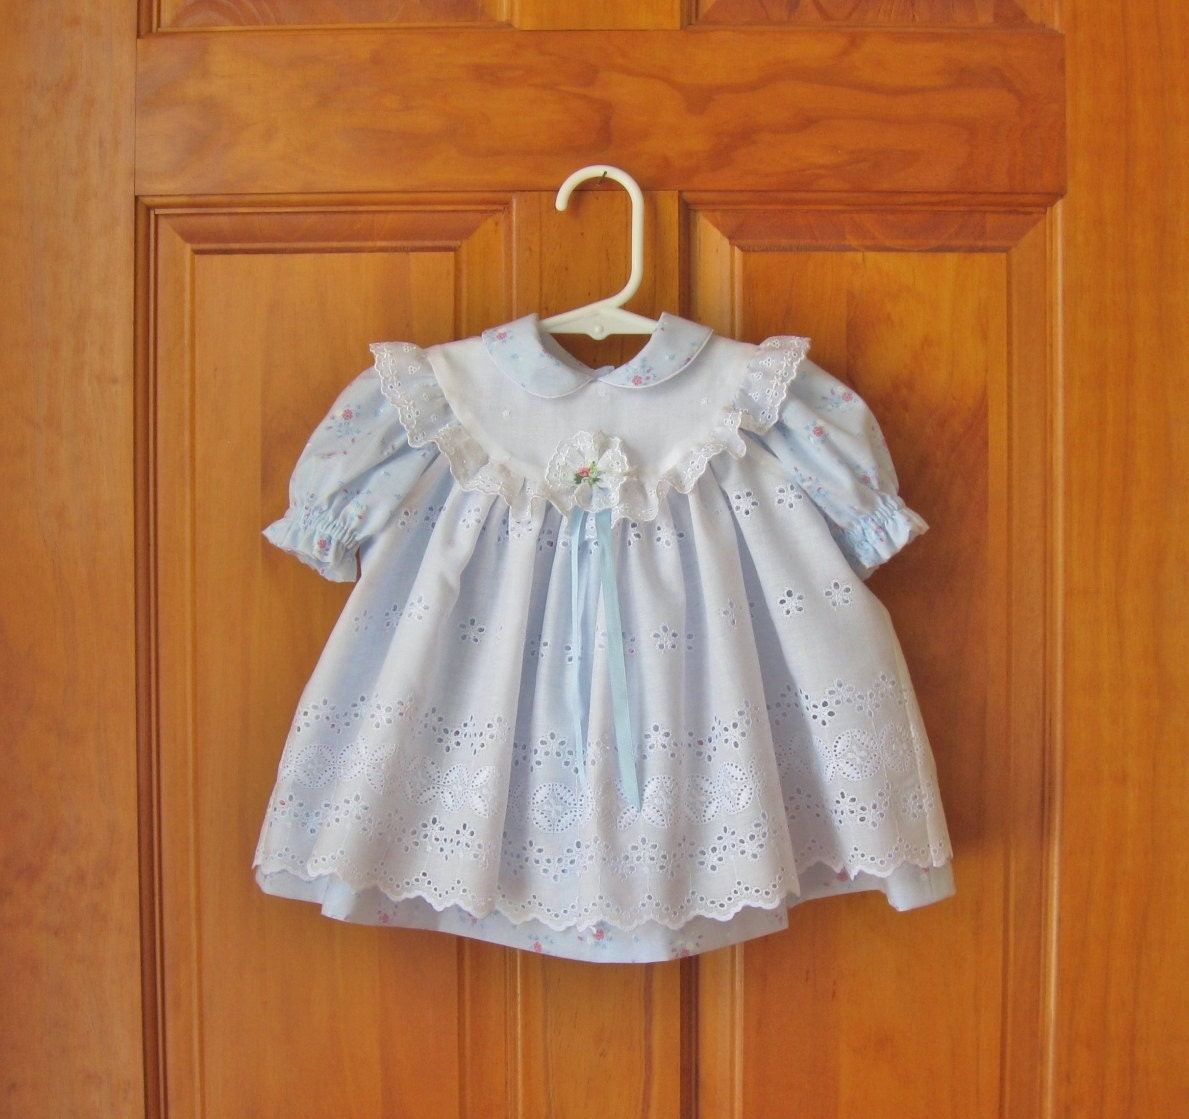 Baby girl blue dress white eyelet pinafore by